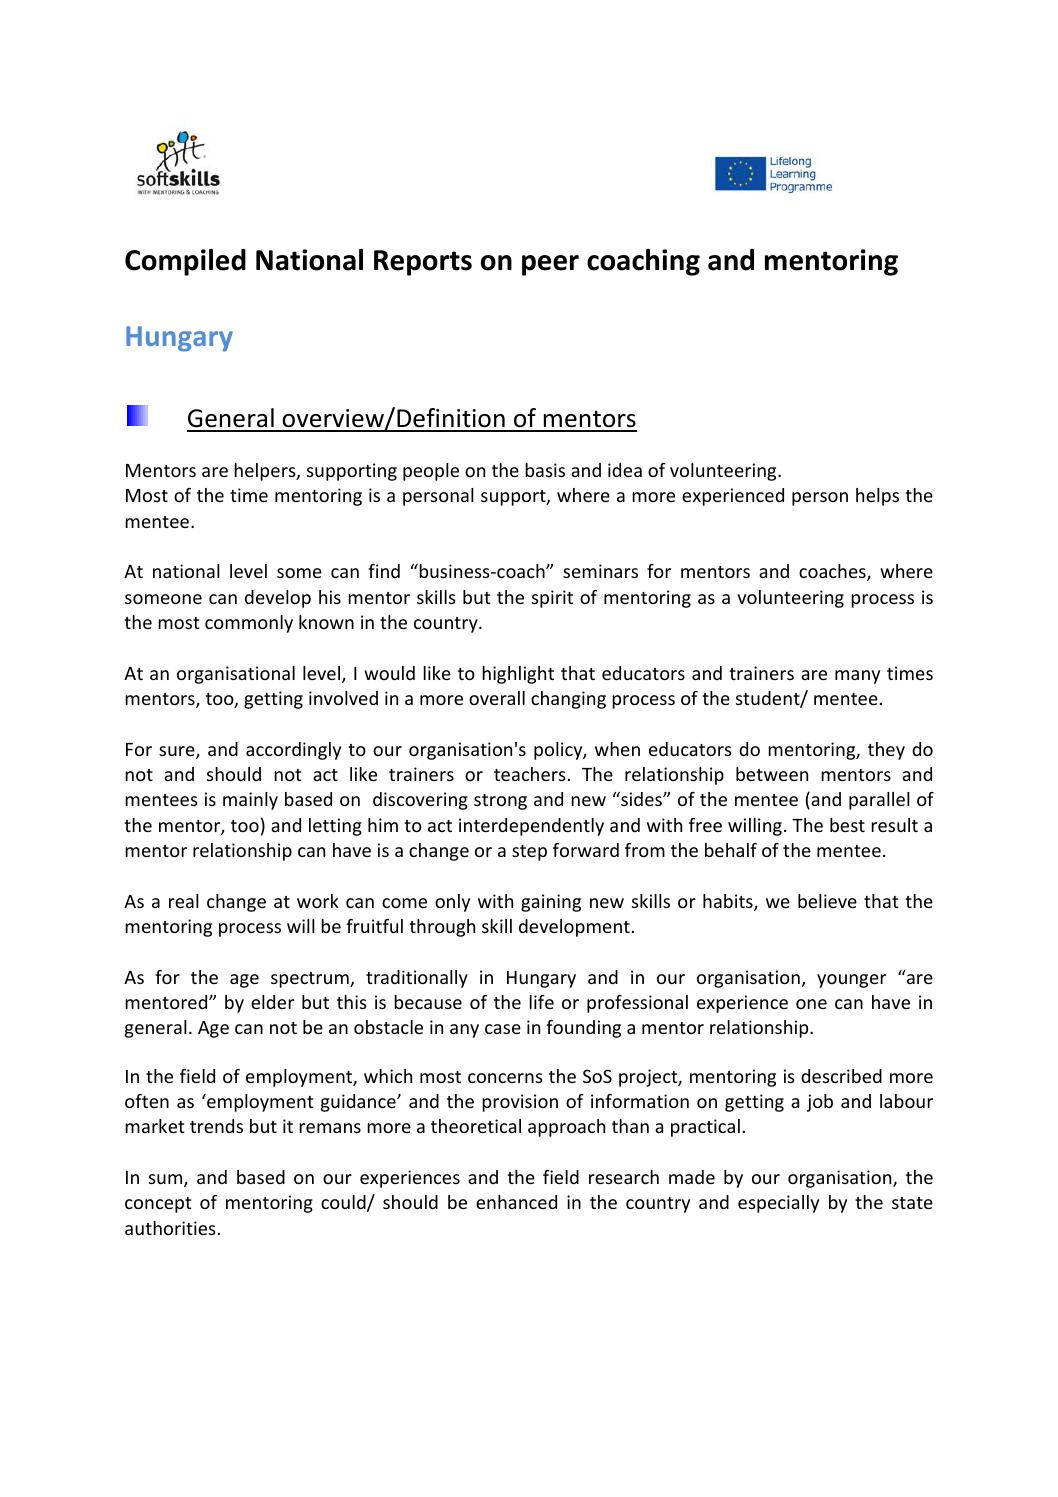 compiled national reports on peer coaching and mentoring by carlo